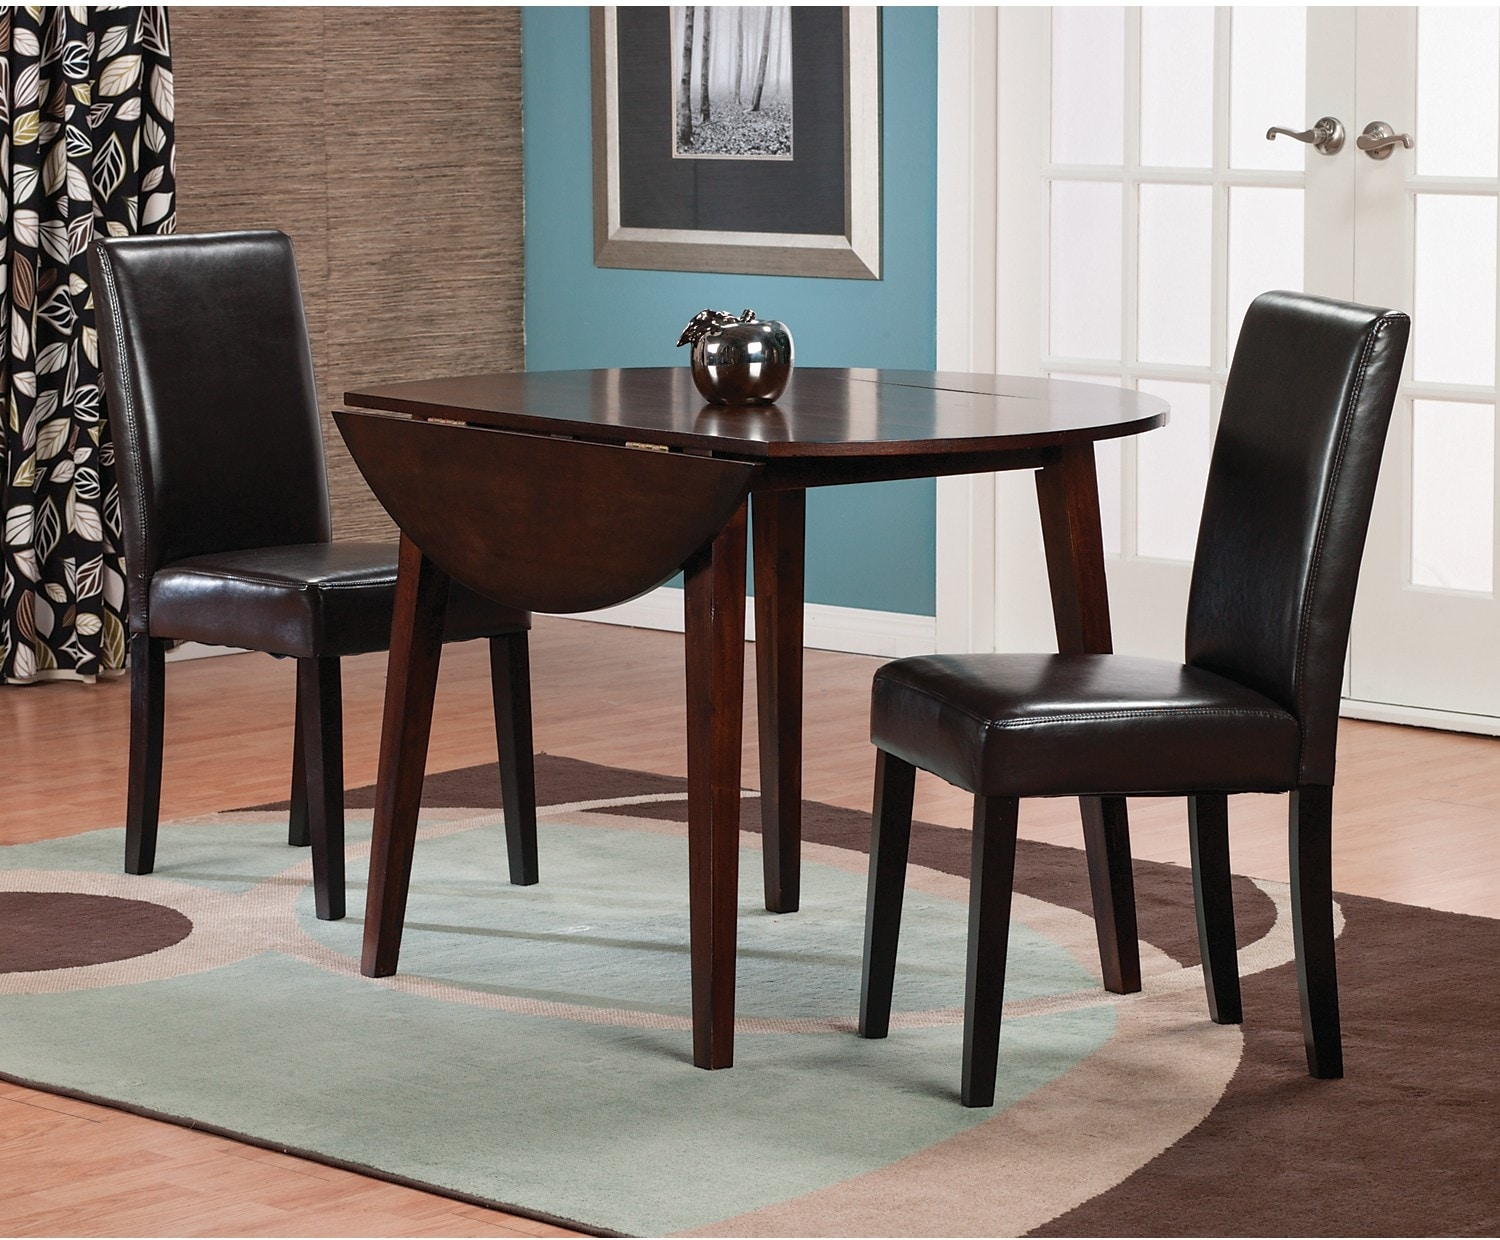 Dining Room Furniture - Adara 3 Piece Dining Package w/ Brown PU Chairs